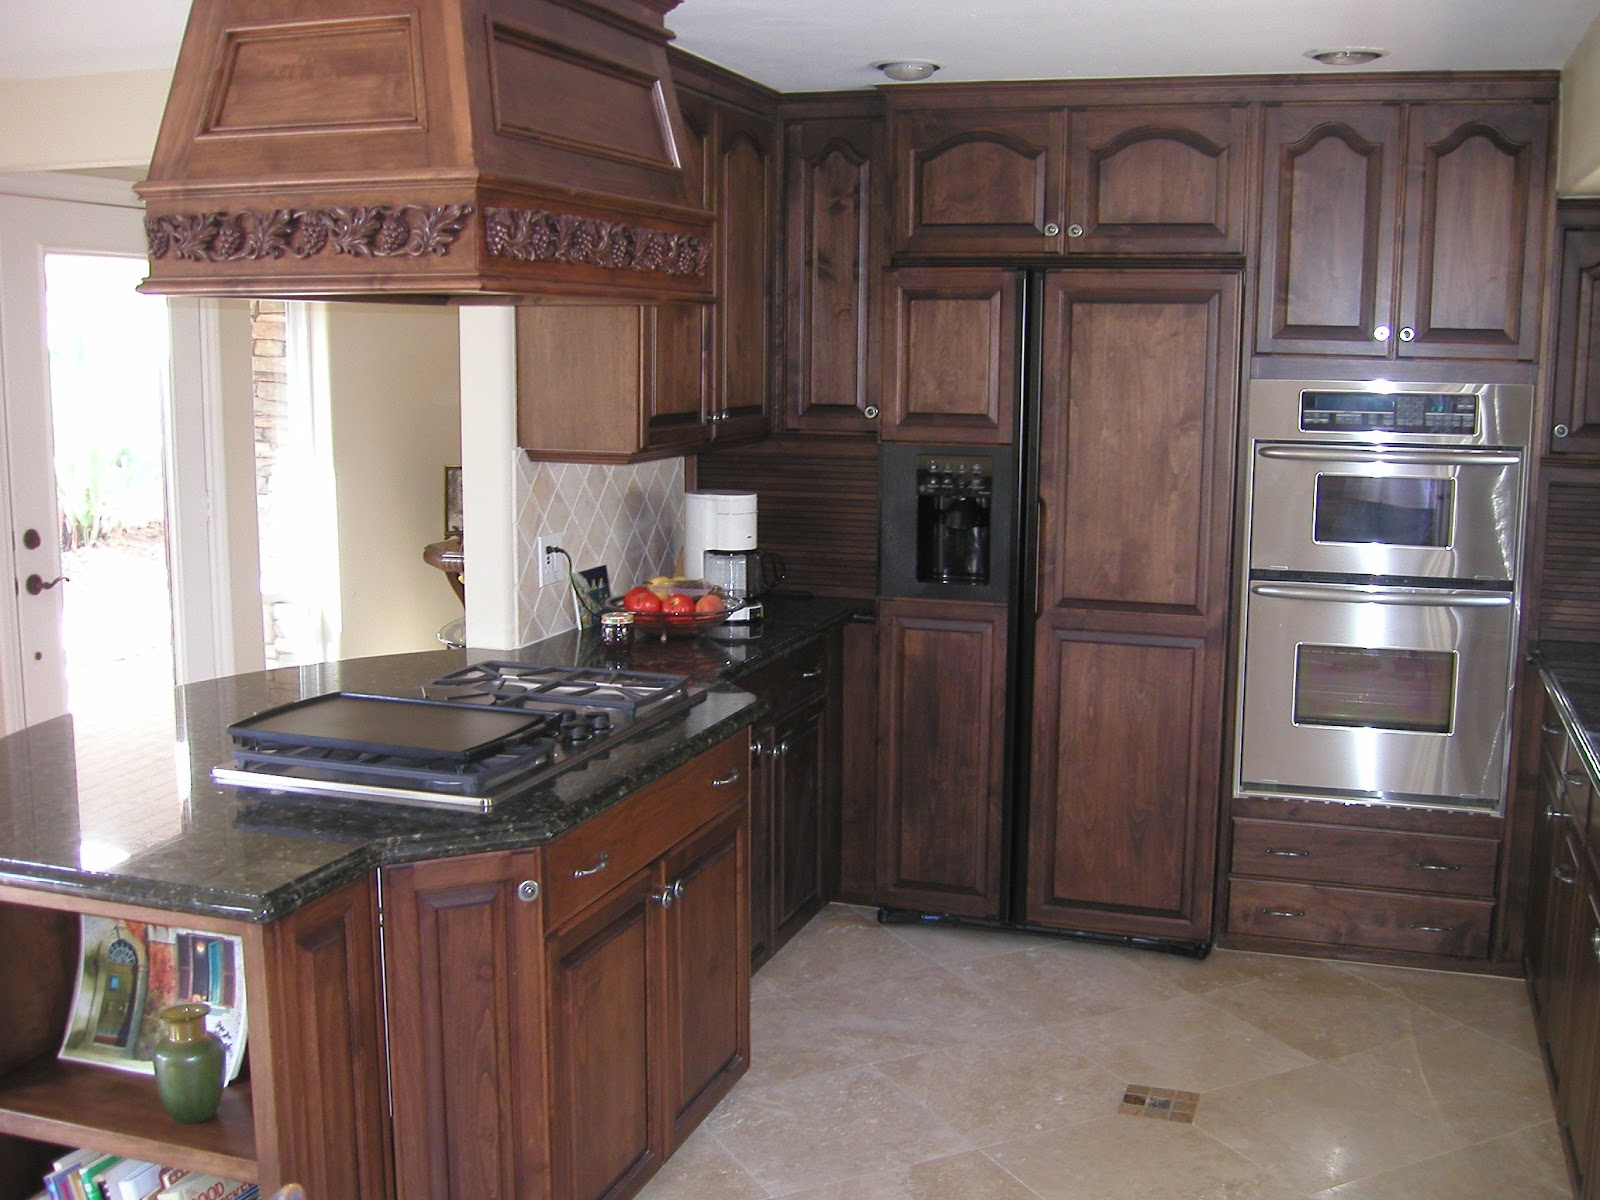 Home design ideas oak kitchen cabinets design ideas for Kitchen cabinet design